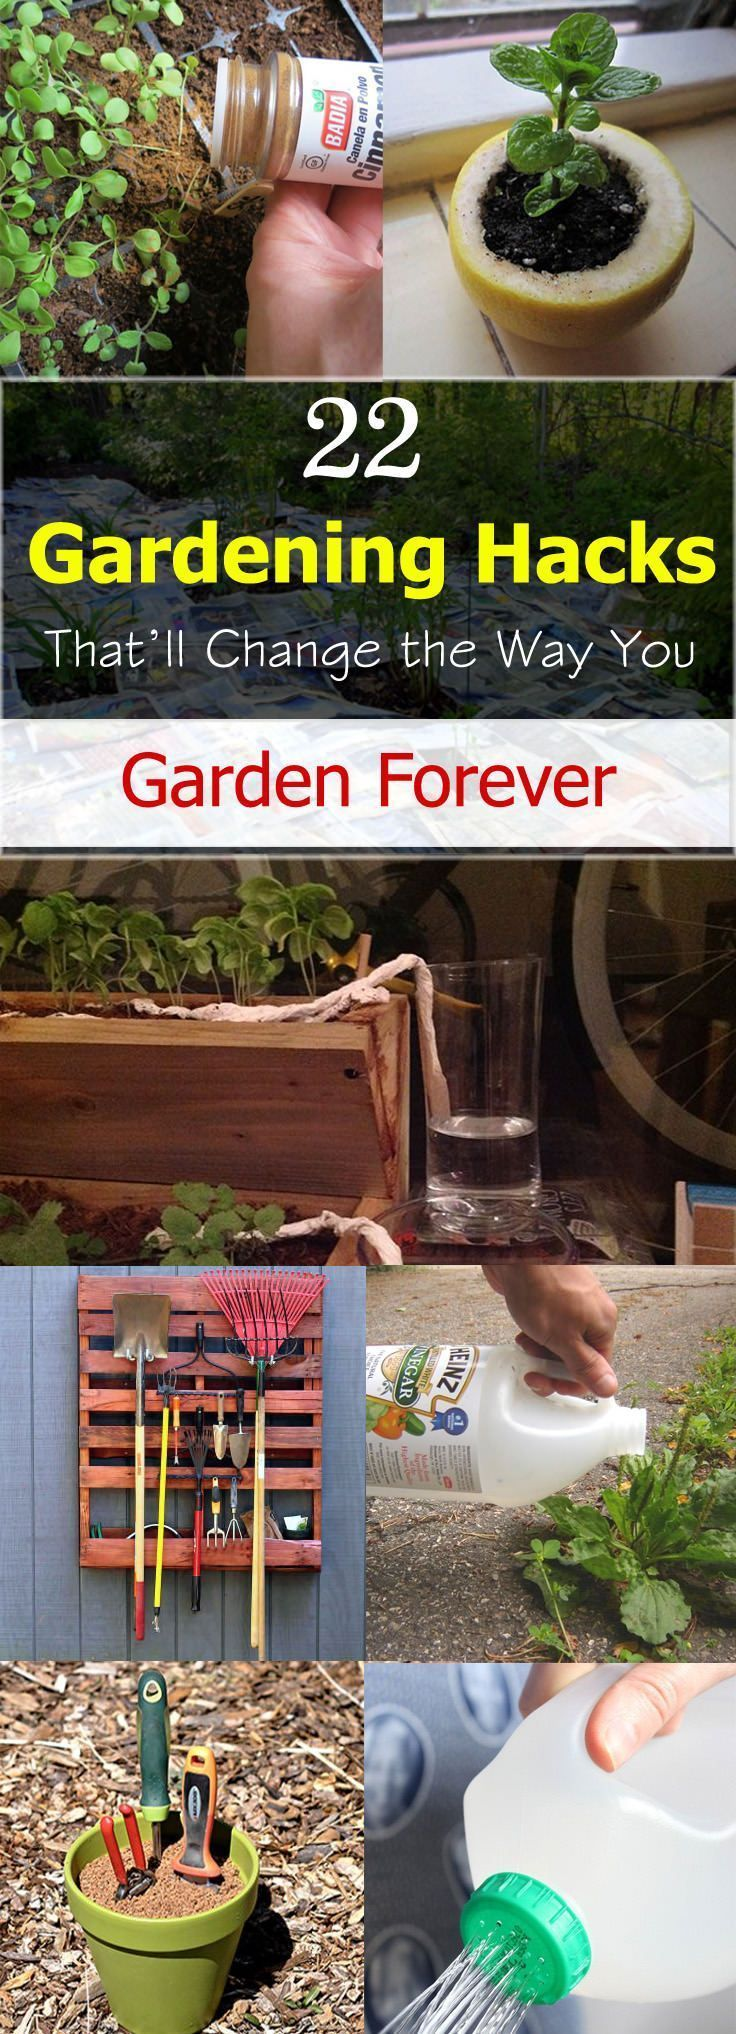 Epsom decking over a raised eyesore ashwell landscapes - These 22 Clever And Easy Gardening Hacks Are So Useful That Using Them Can Change The